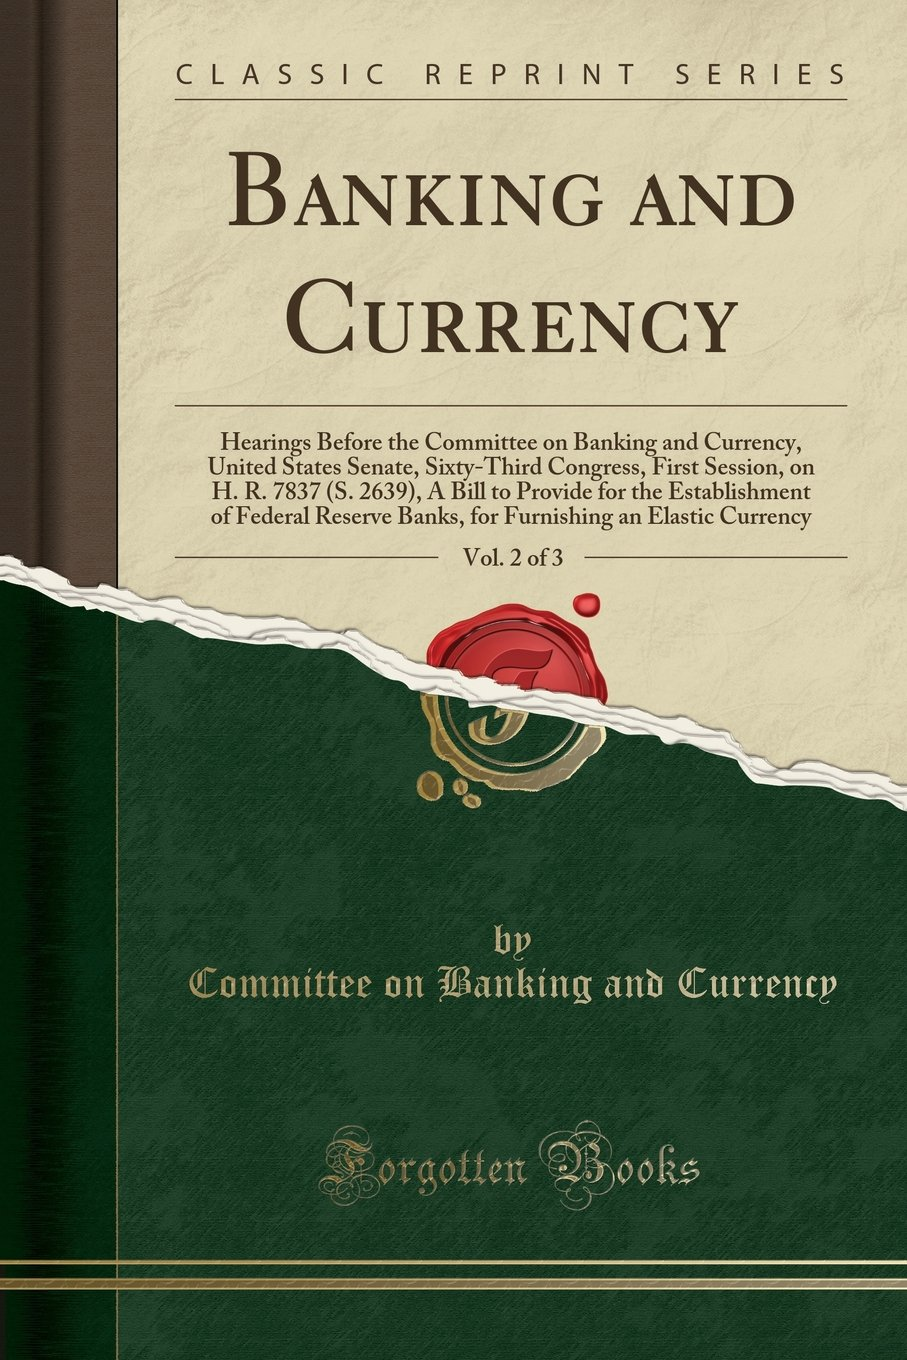 Banking and Currency, Vol. 2 of 3: Hearings Before the Committee on Banking and Currency, United States Senate, Sixty-Third Congress, First Session. of Federal Reserve Banks, for Furnishing pdf epub